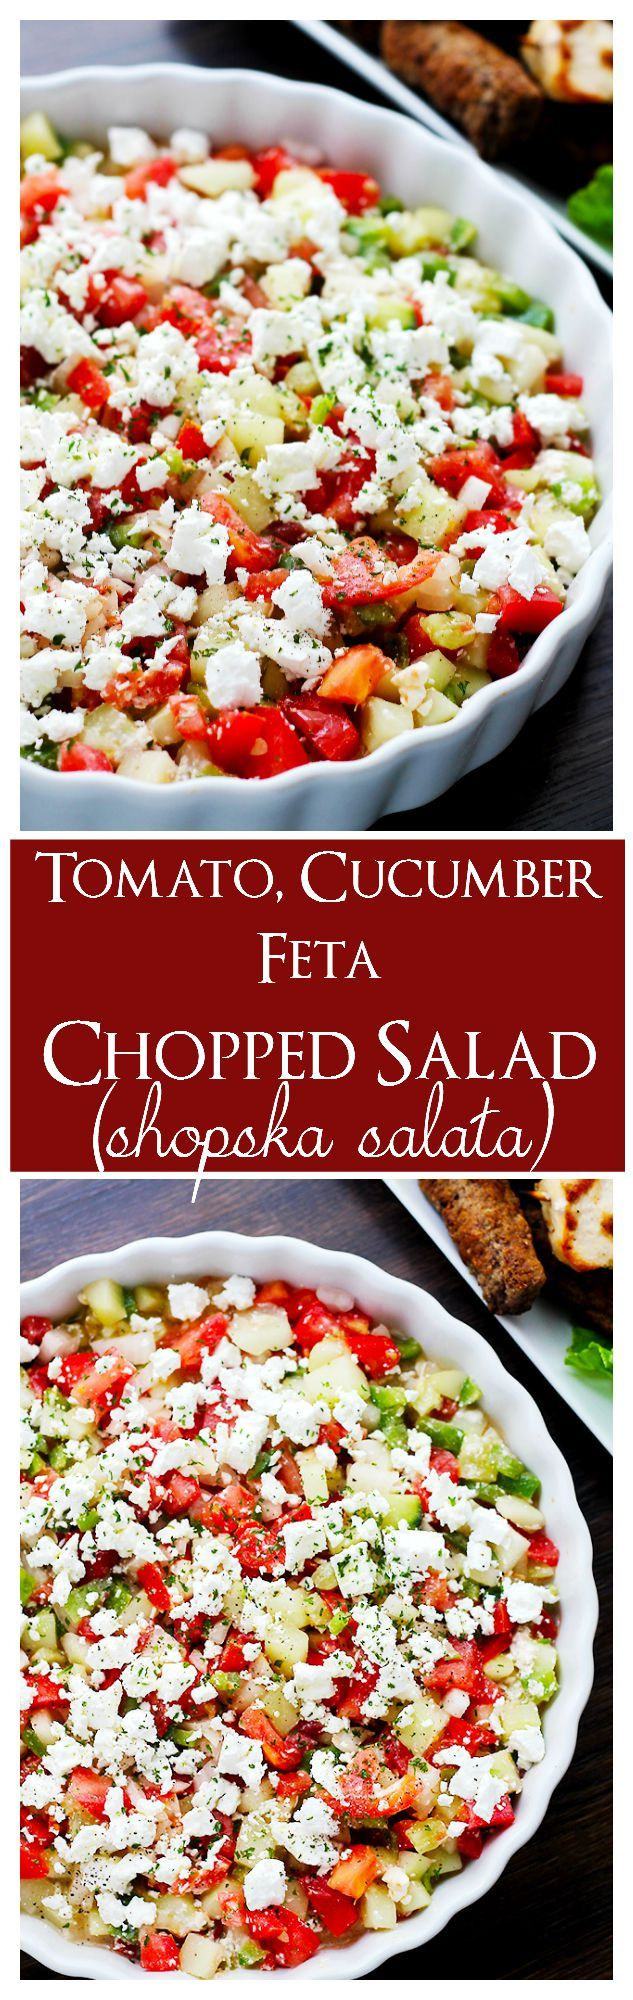 Tomato, Cucumber, Feta Chopped Salad (Shopska Salata) | www.diethood.com | The Macedonian version of a chopped salad with cucumbers, tomatoes, onions, peppers and white [feta] cheese.